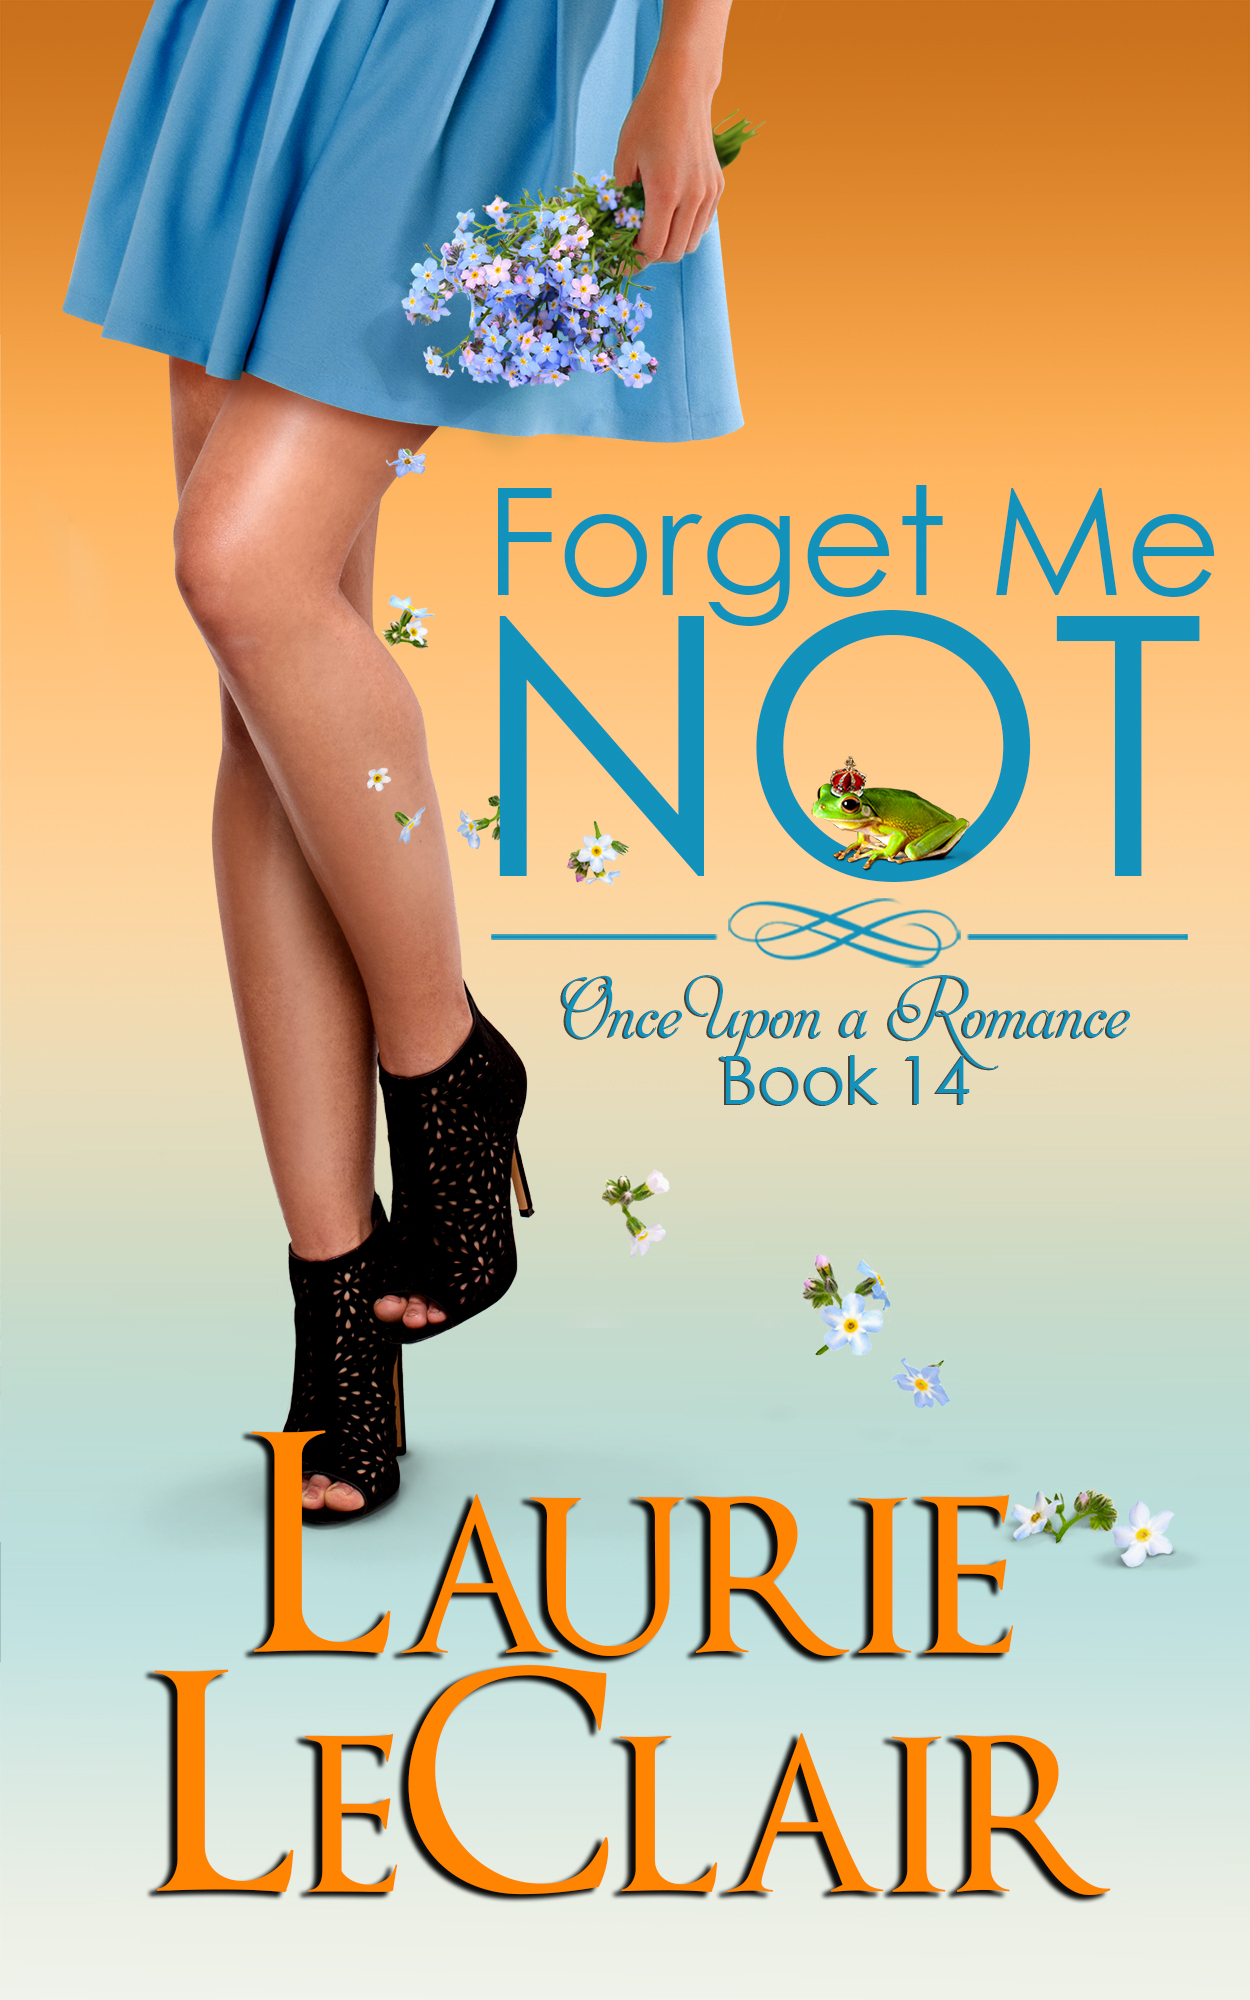 Forget Me Not final for Barnes and Noble